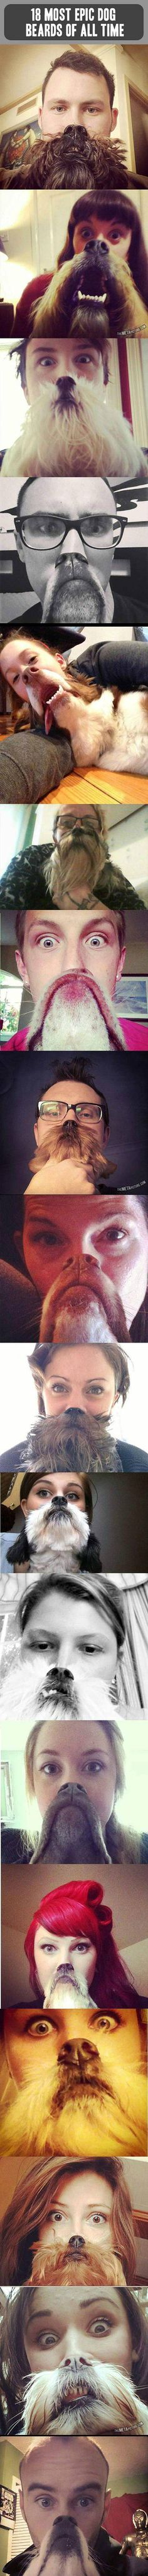 Here are some funny dog pictures snapped at the perfect time.